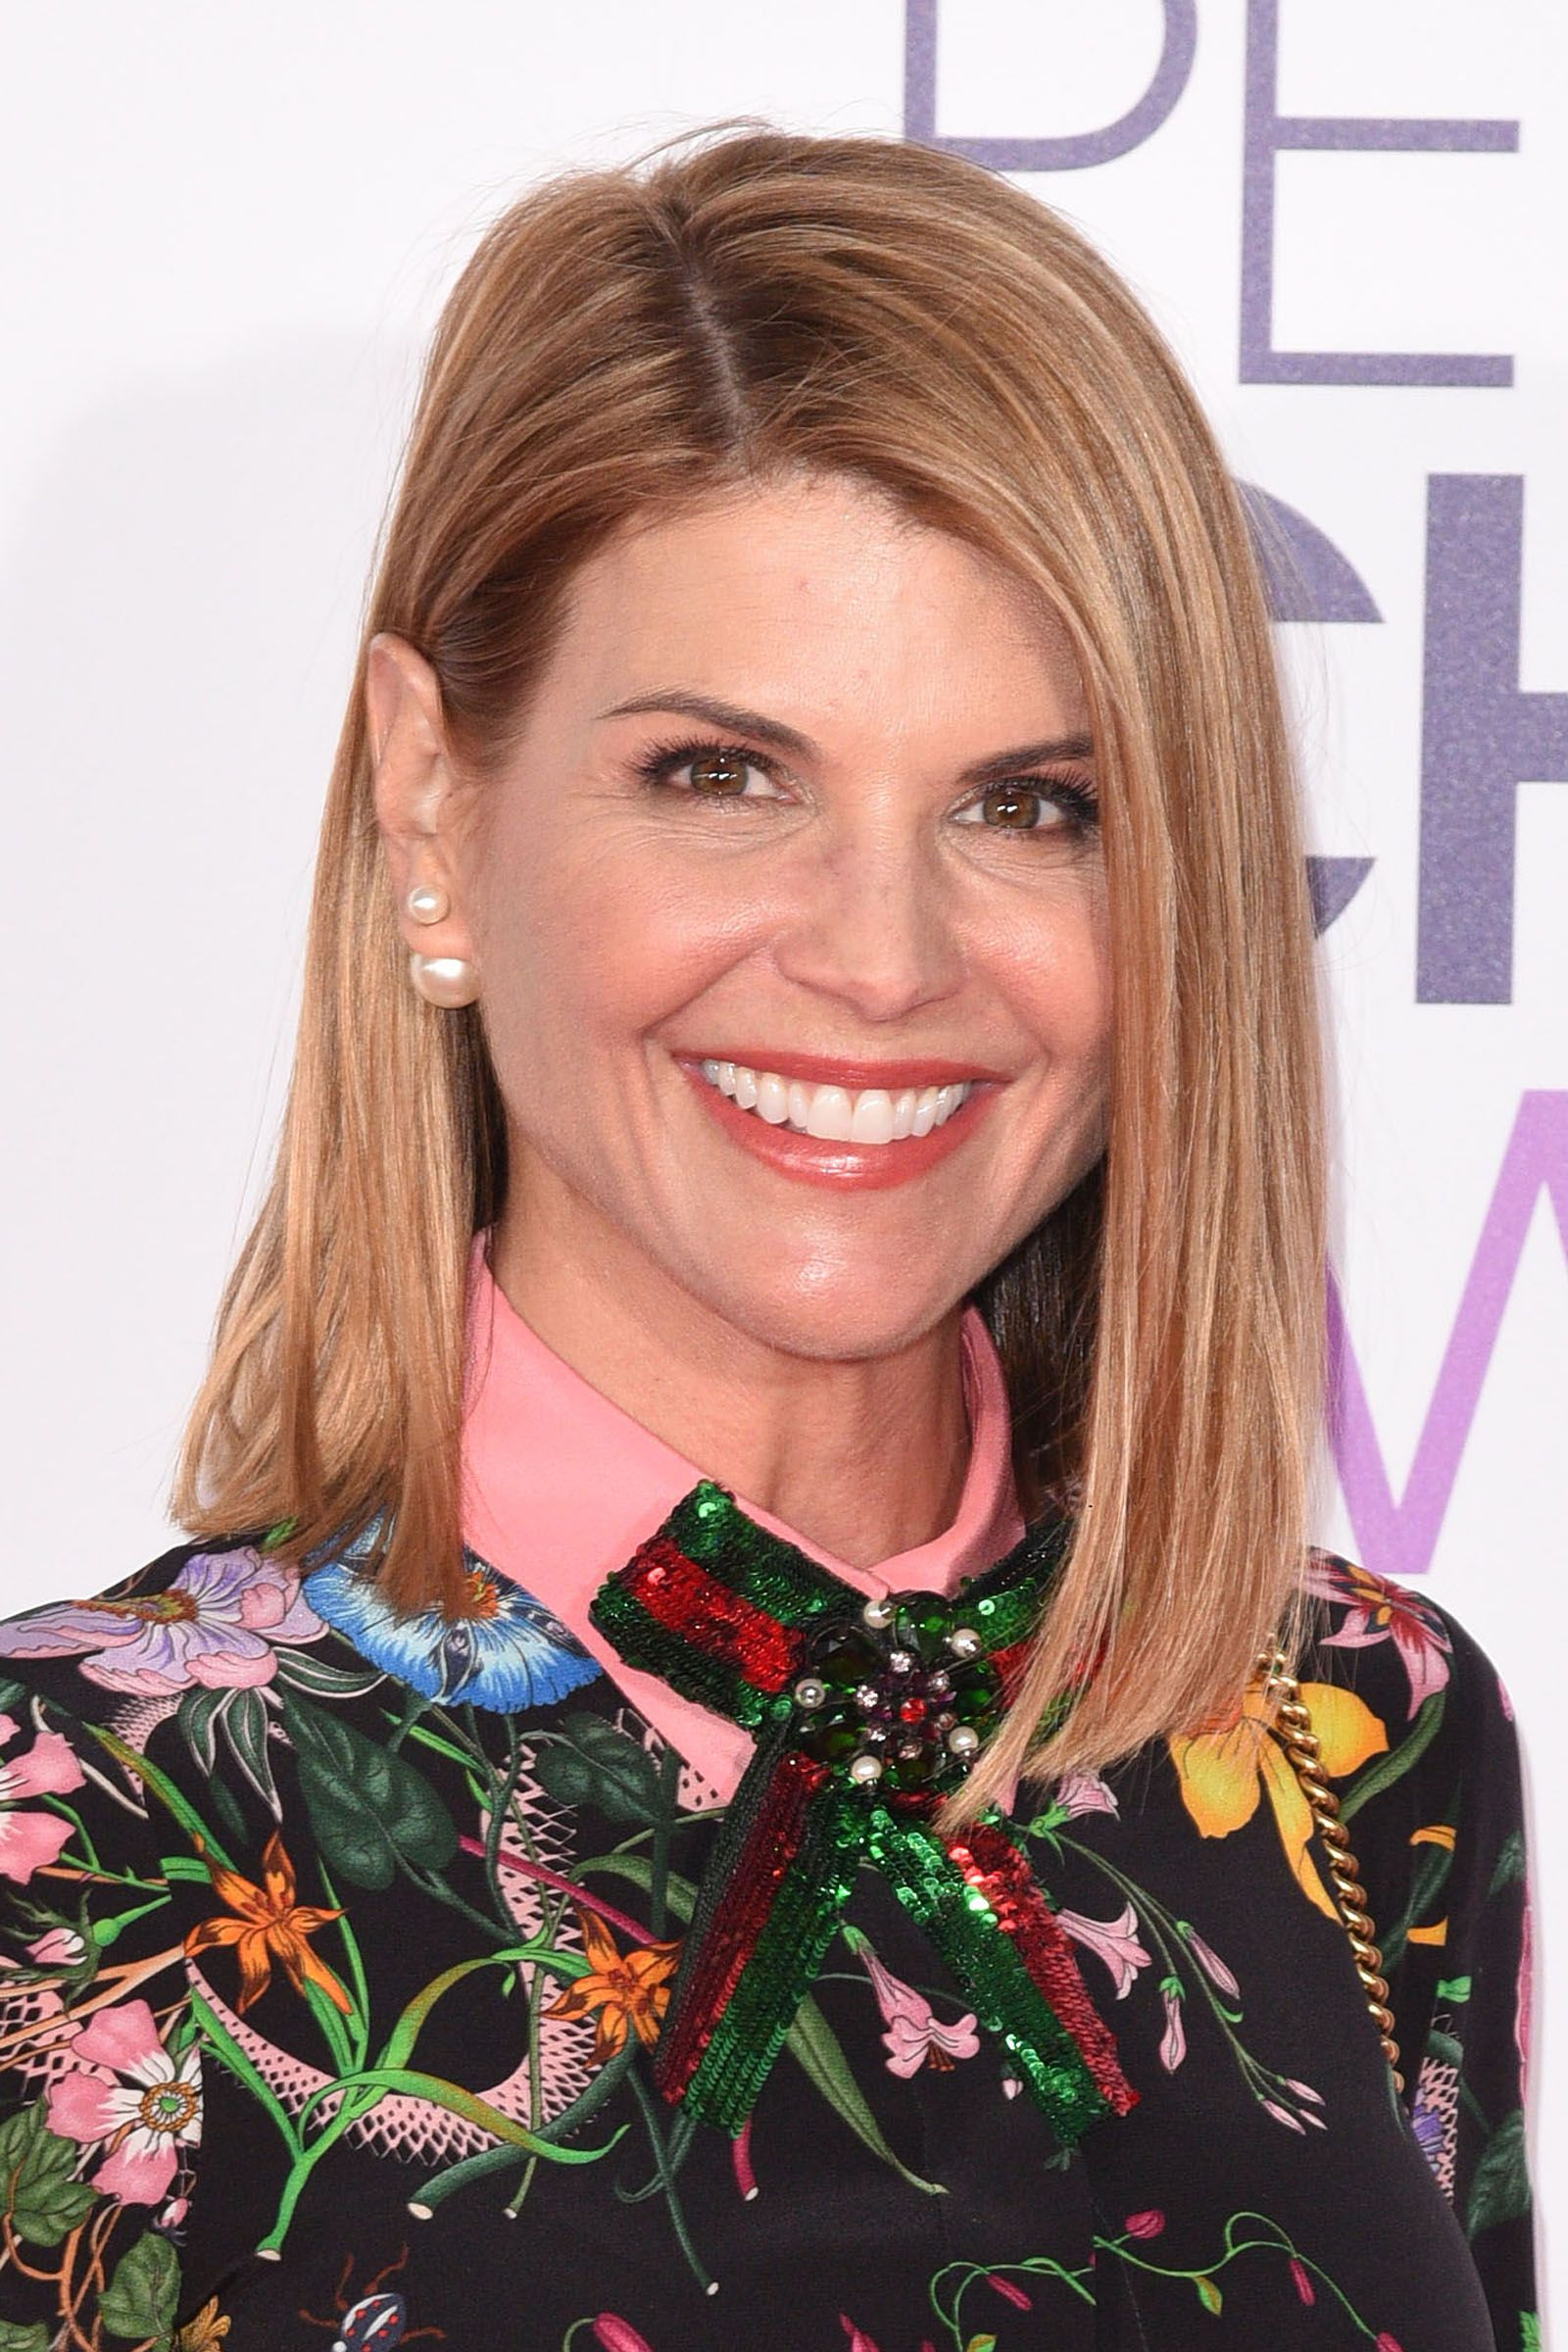 hairstyles for women over 50 Lori Loughlin's Straight Lob